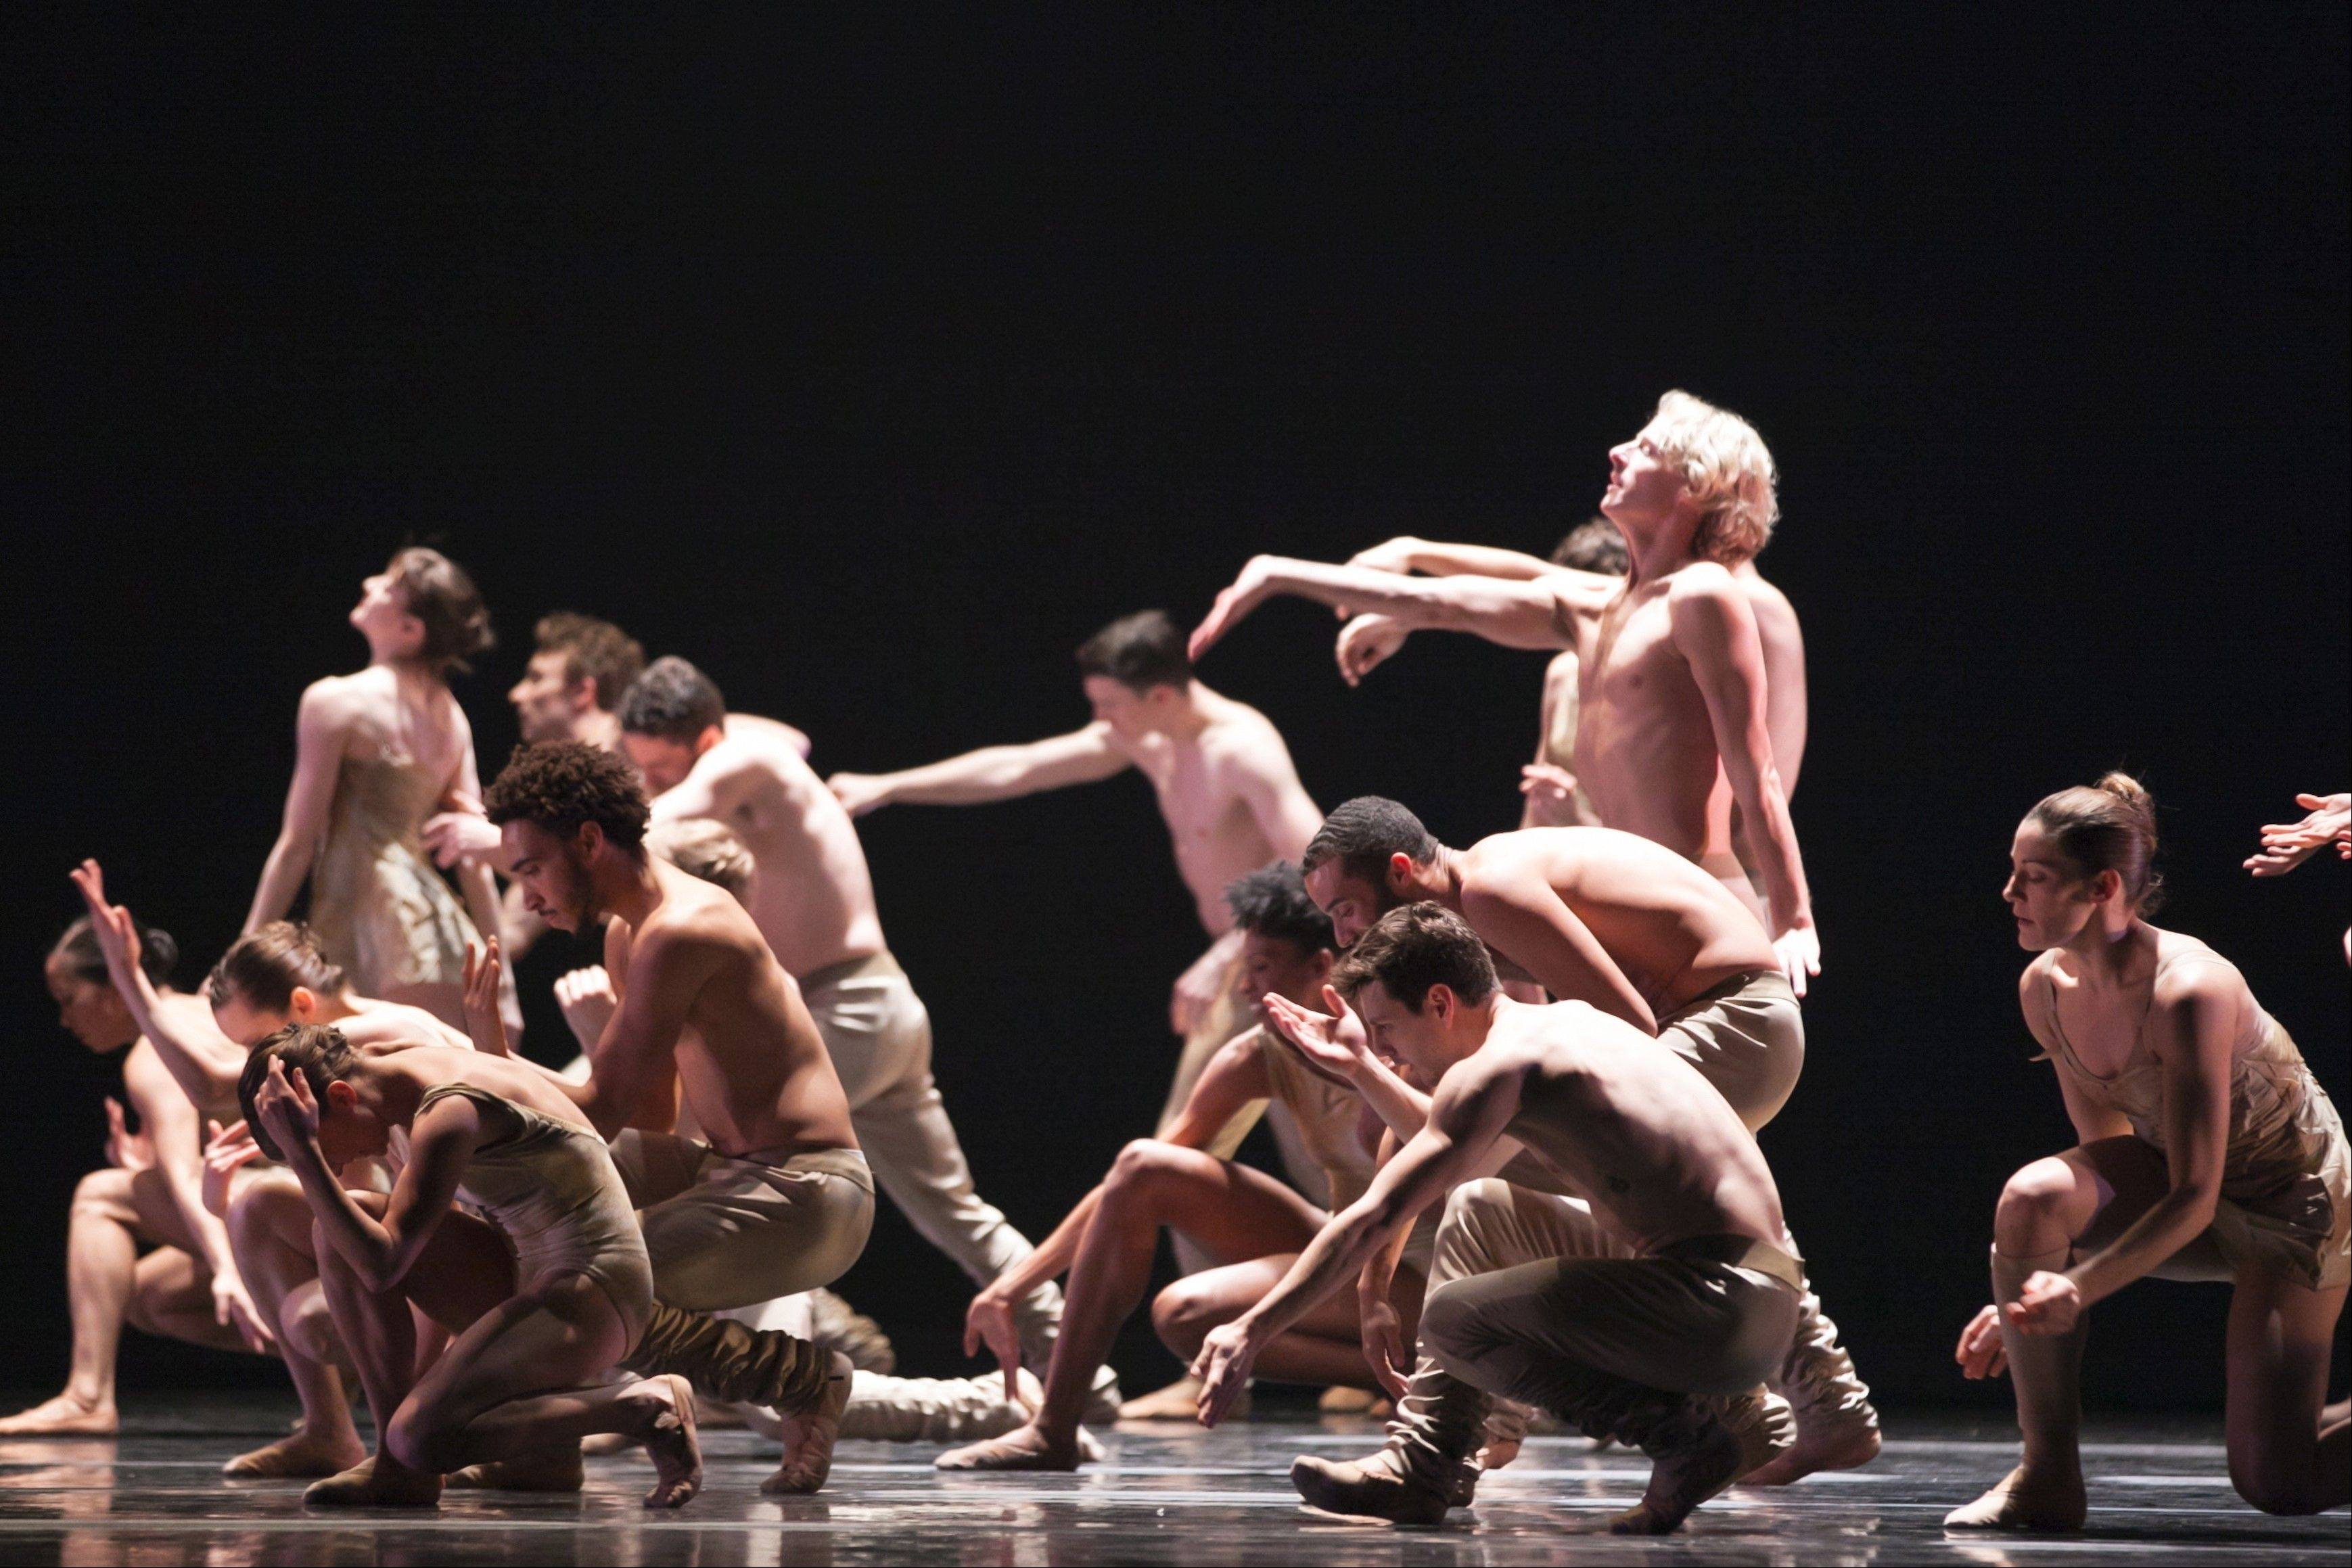 Hubbard Street Dance Chicago teams up with San Francisco-based Alonzo King LINES Ballet to form the supergroup AZIMUTH at Millennium Park's Harris Theater for Music and Dance in Chicago.